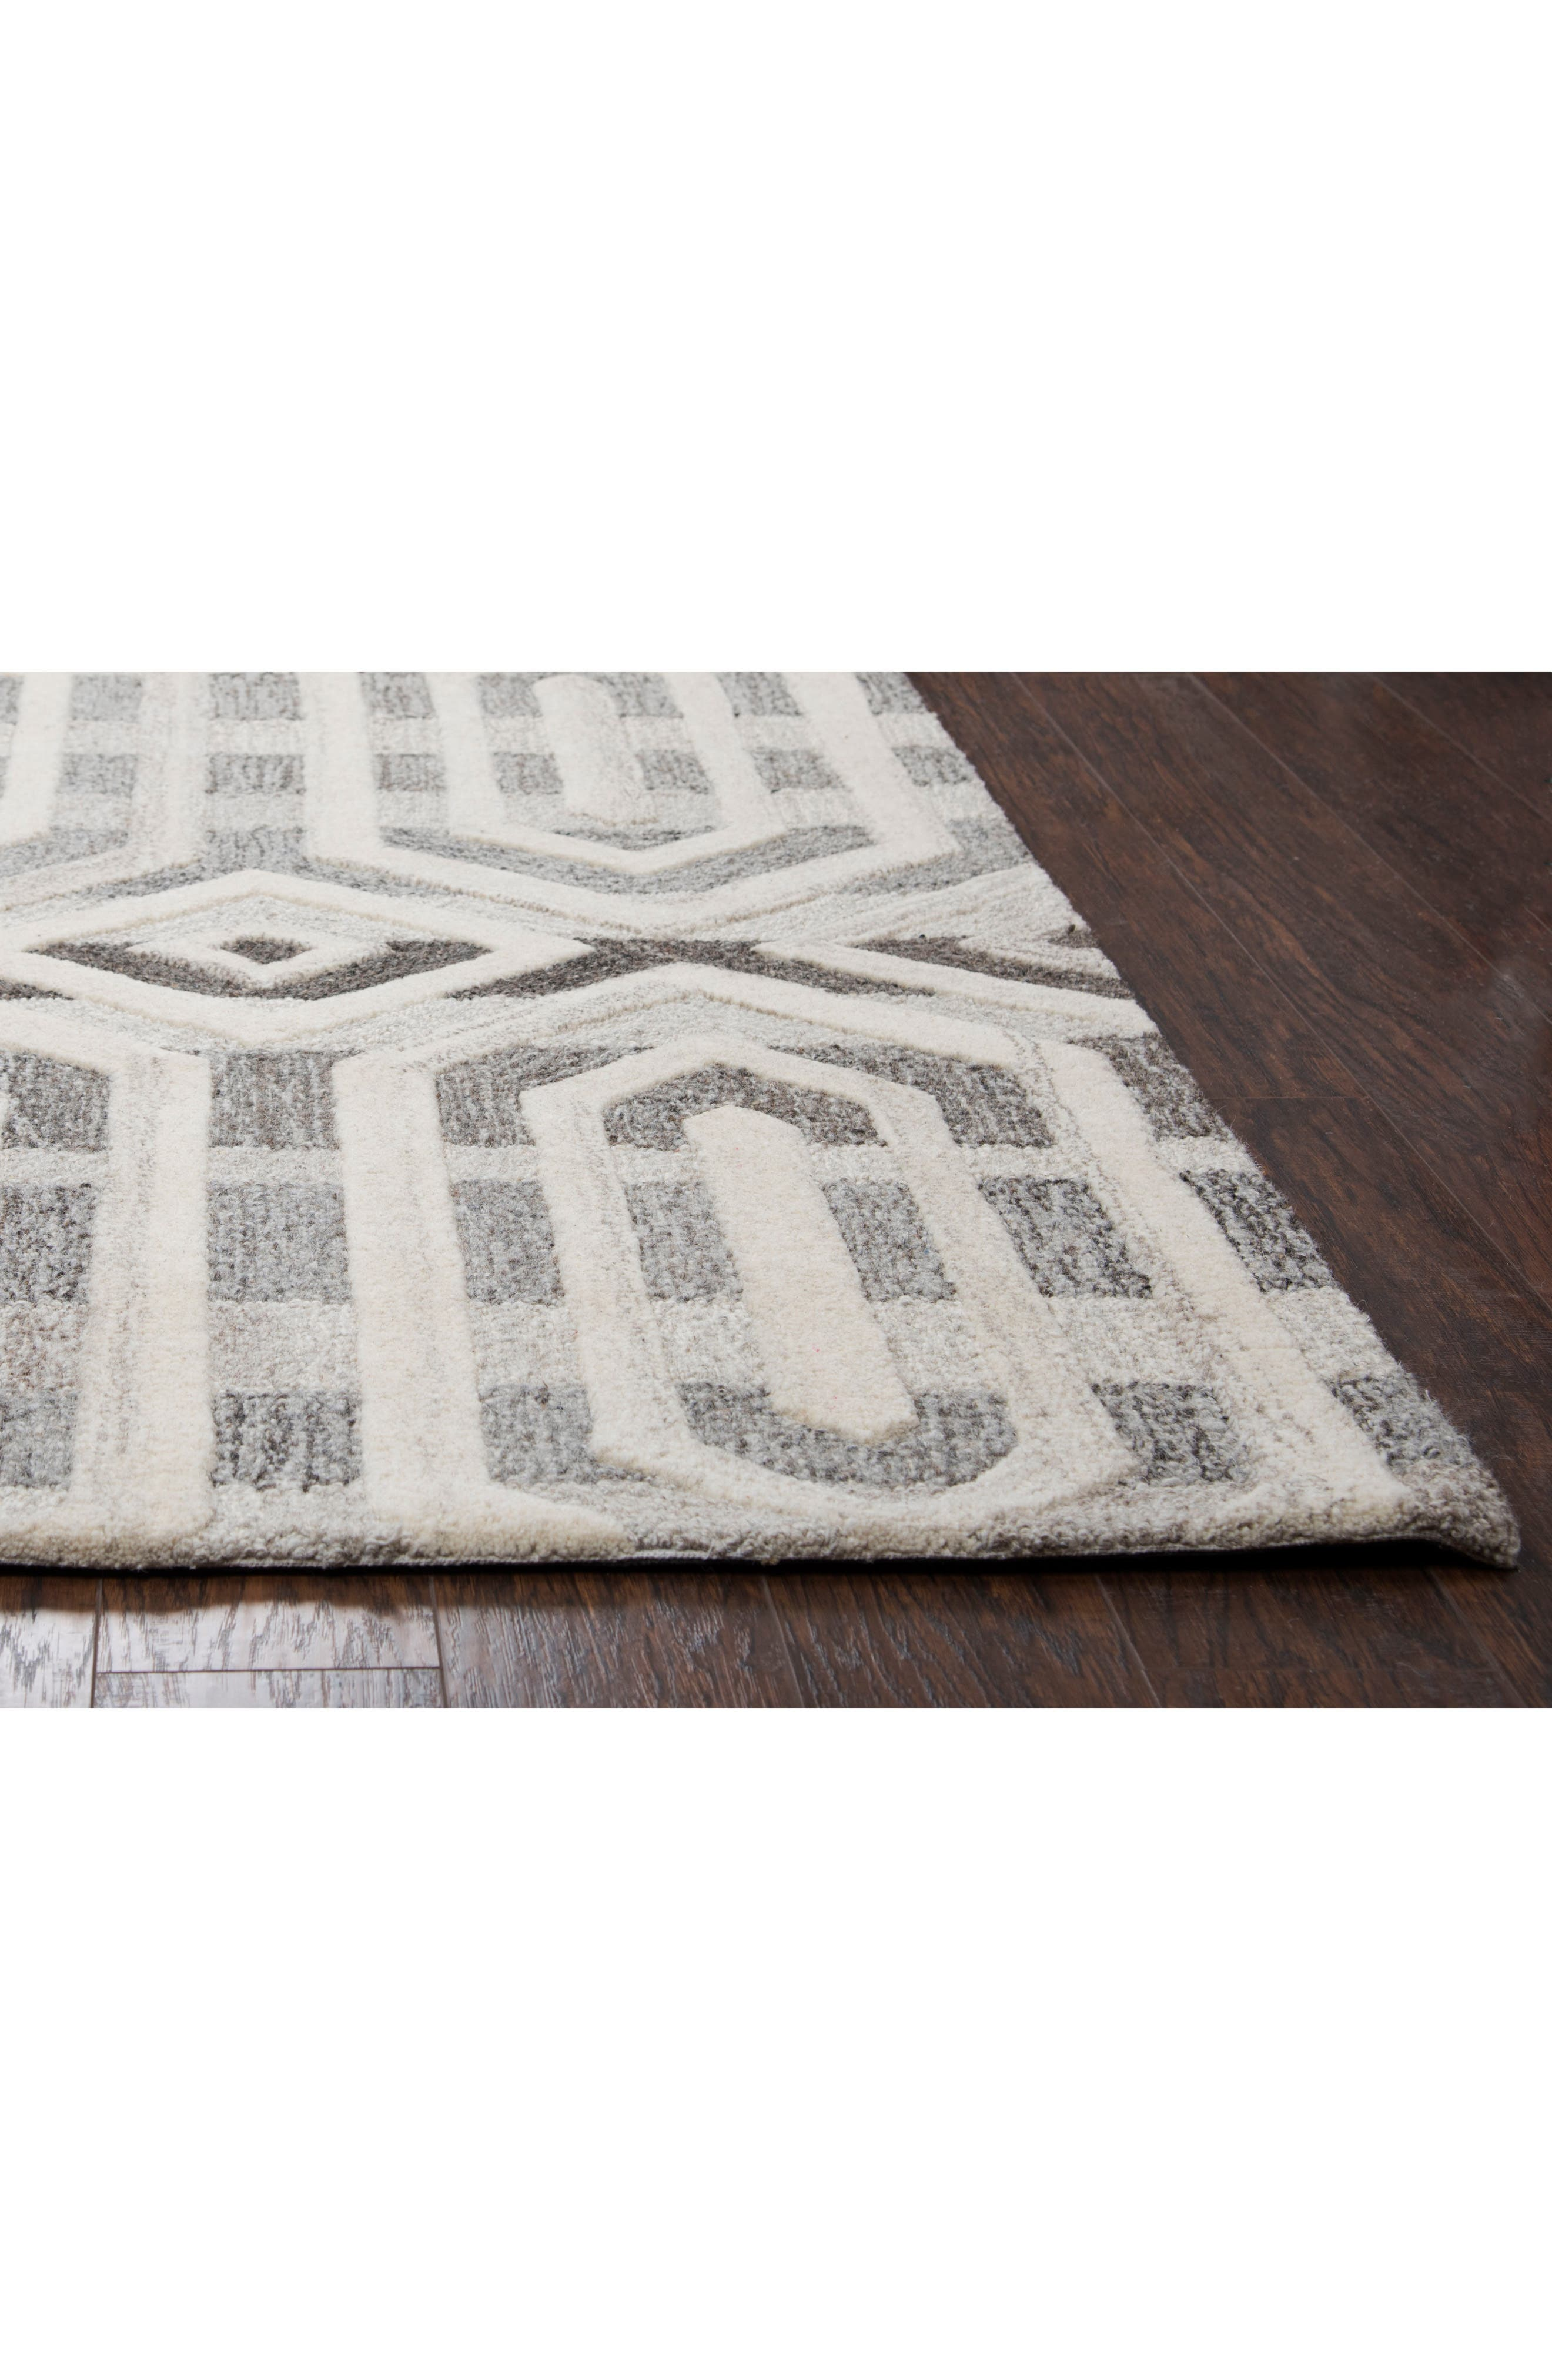 Urban Octagon Hand Tufted Wool Area Rug,                             Alternate thumbnail 4, color,                             020